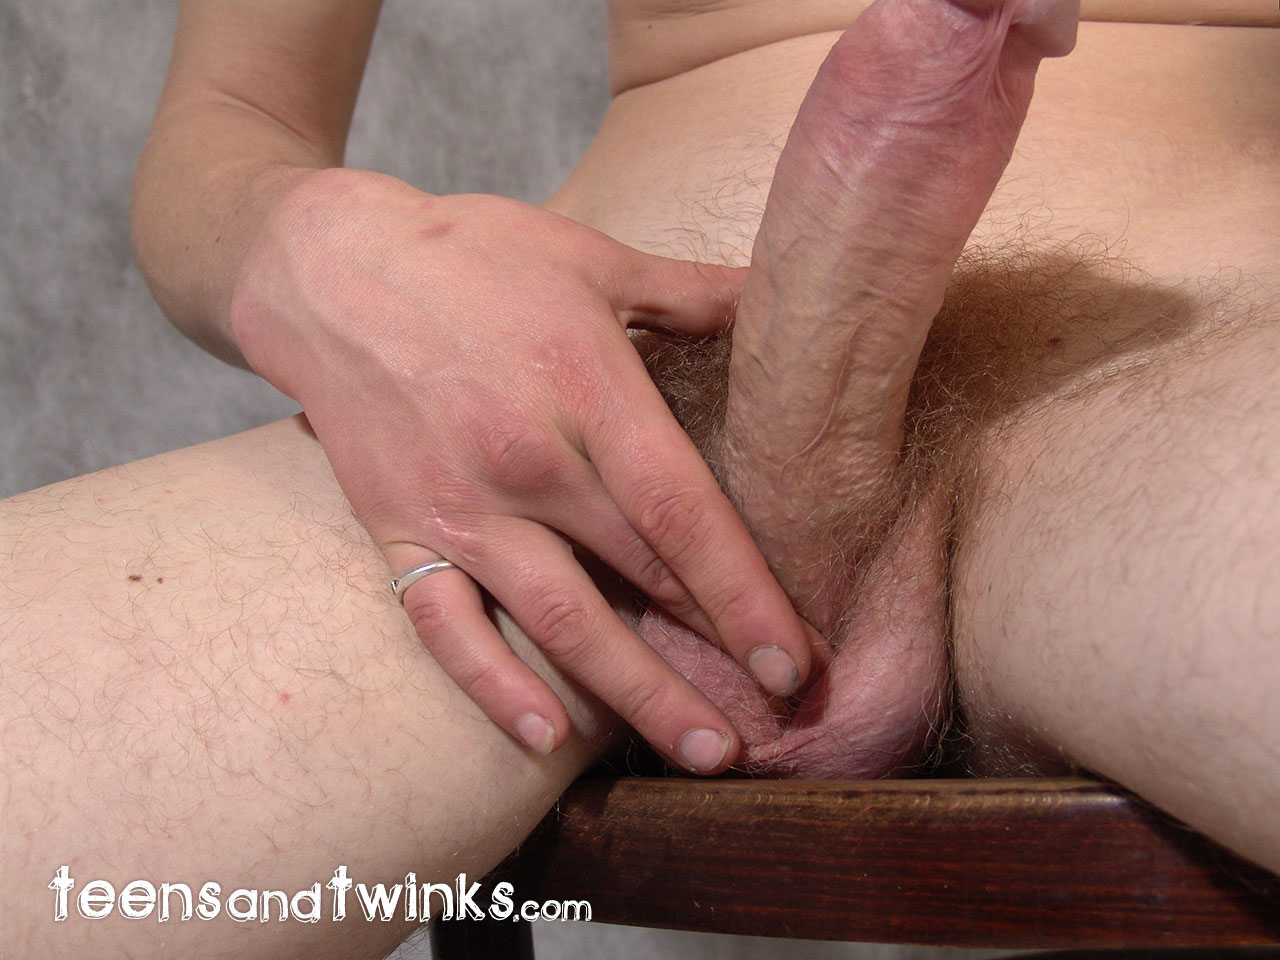 Teens-and-Twinks-Mark-Blonde-Twink-With-A-Huge-Cock-Masturbating-Amateur-Gay-Porn-11 Masturbating Amateur Blonde Twink With A Huge Thick Cock